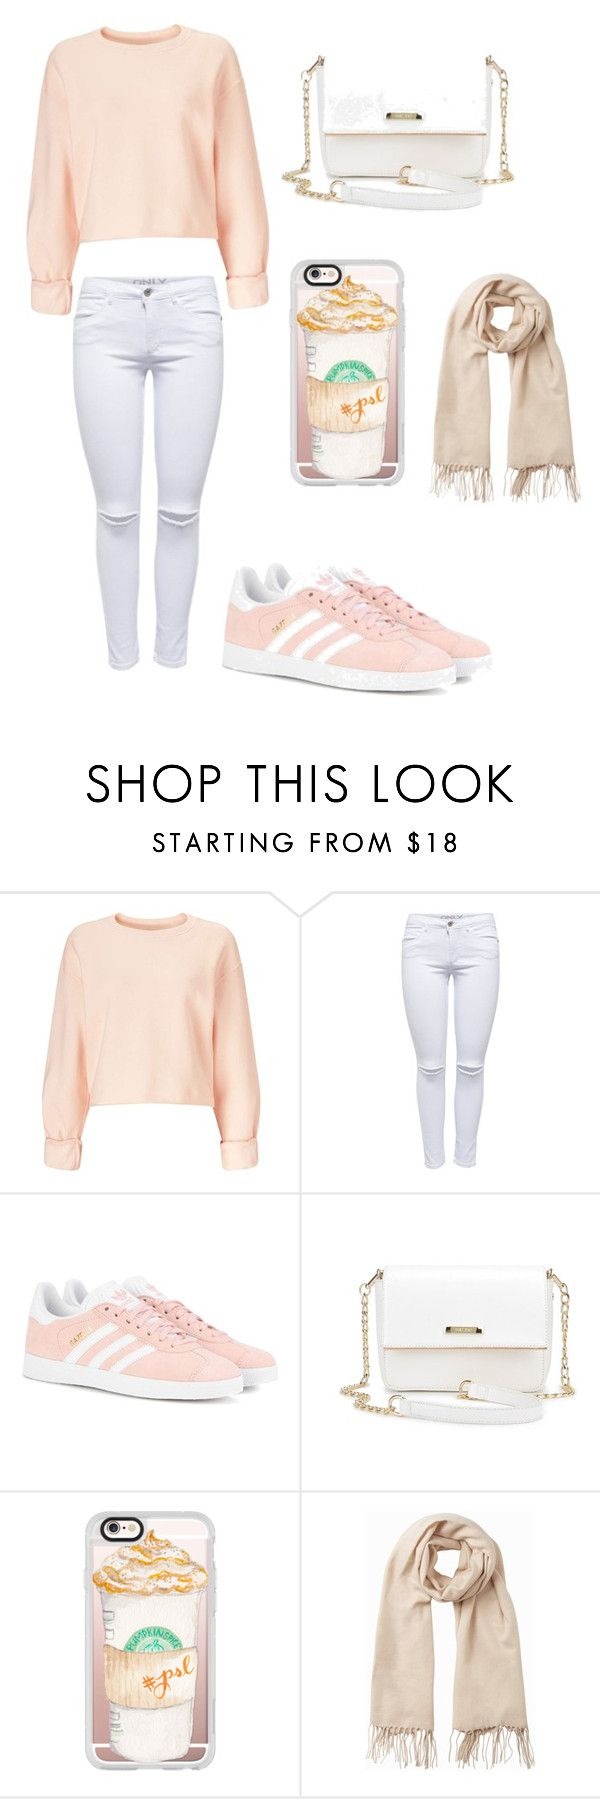 """Untitled #115"" by merria-zion on Polyvore featuring Miss Selfridge, adidas Originals, Casetify and Vero Moda"